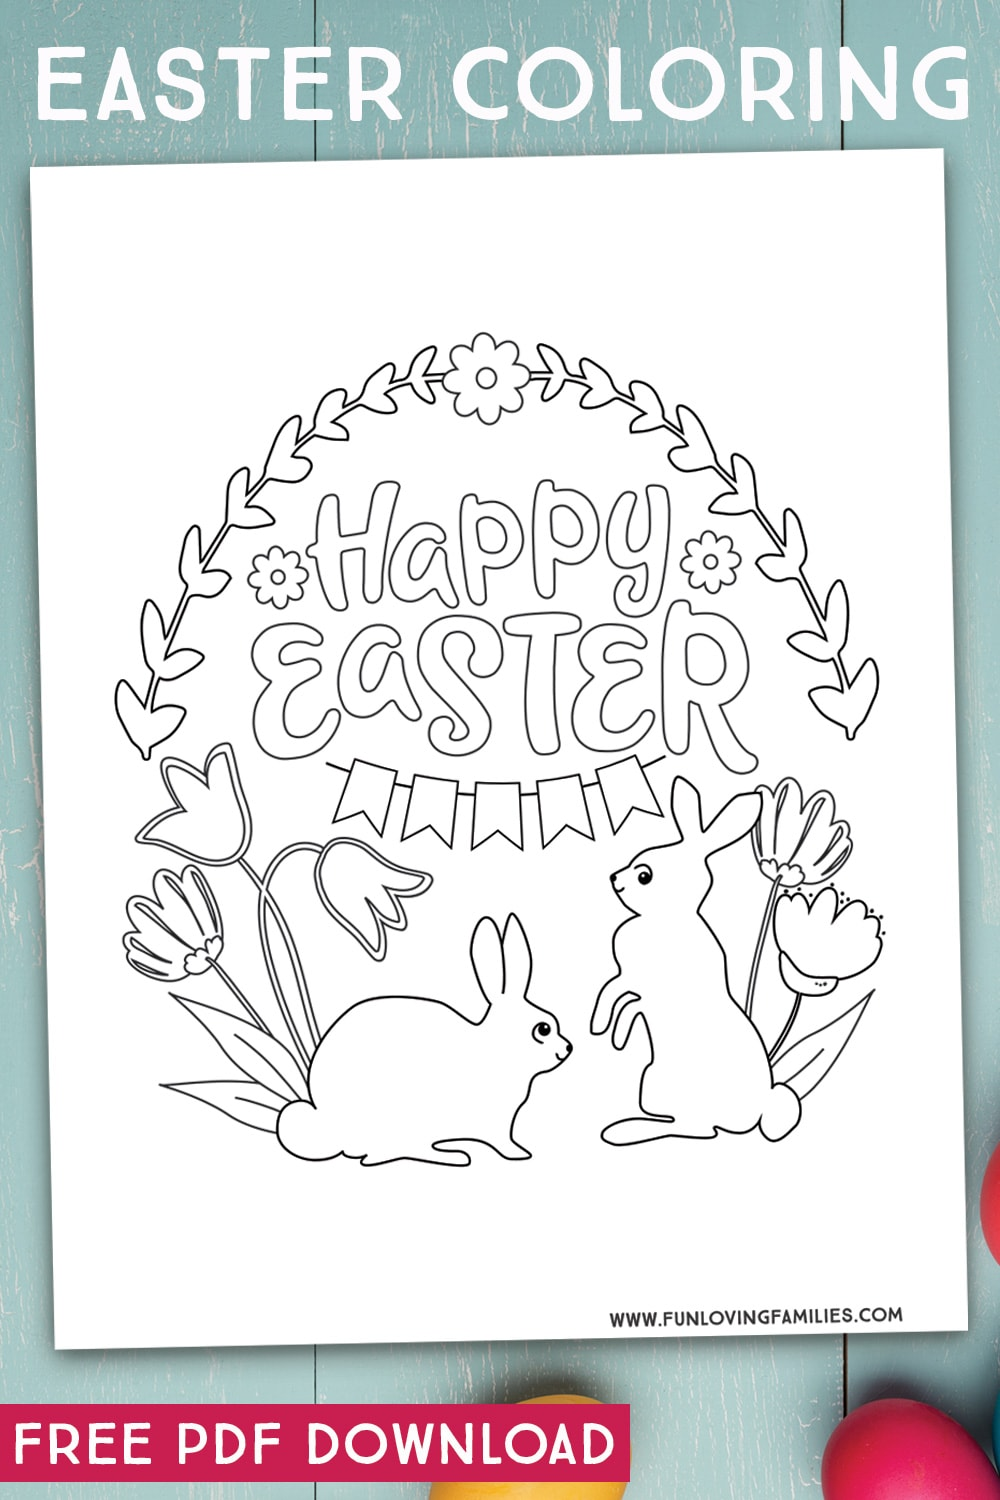 - 9 Easter Coloring Pages For Kids (Free Printables) - Fun Loving